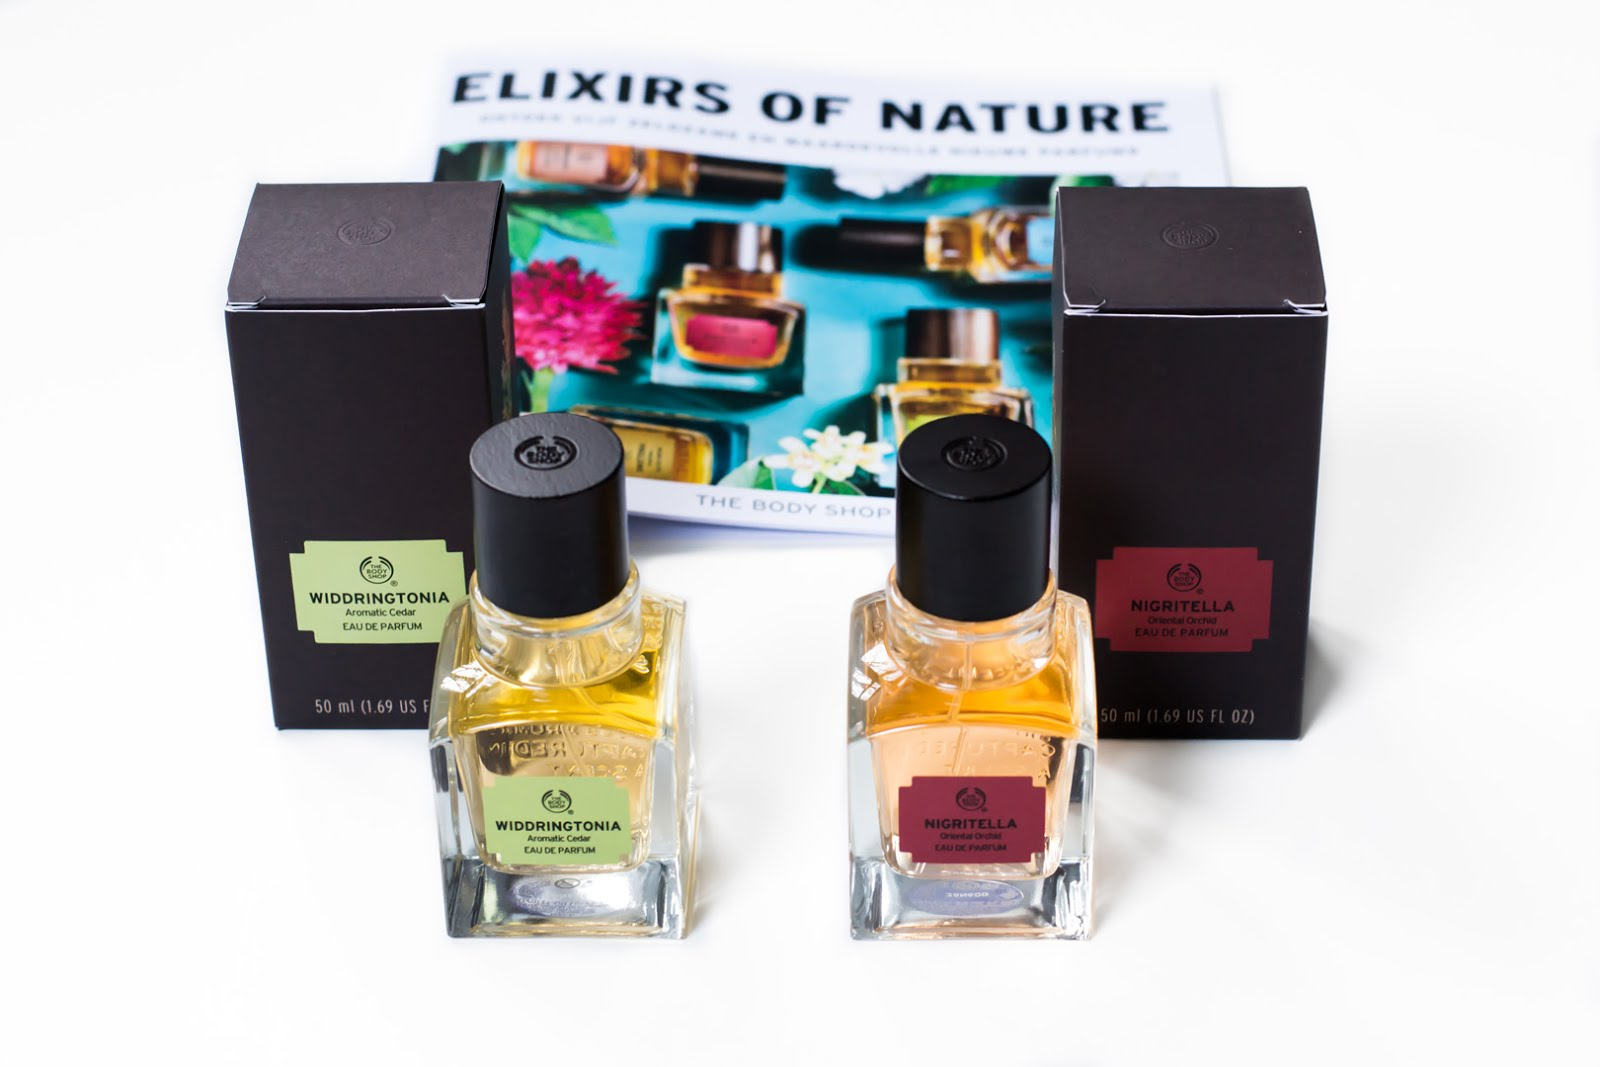 The body shop, elixirs of nature, perfume, fragrances, ss17, widdringtonia, nigritella